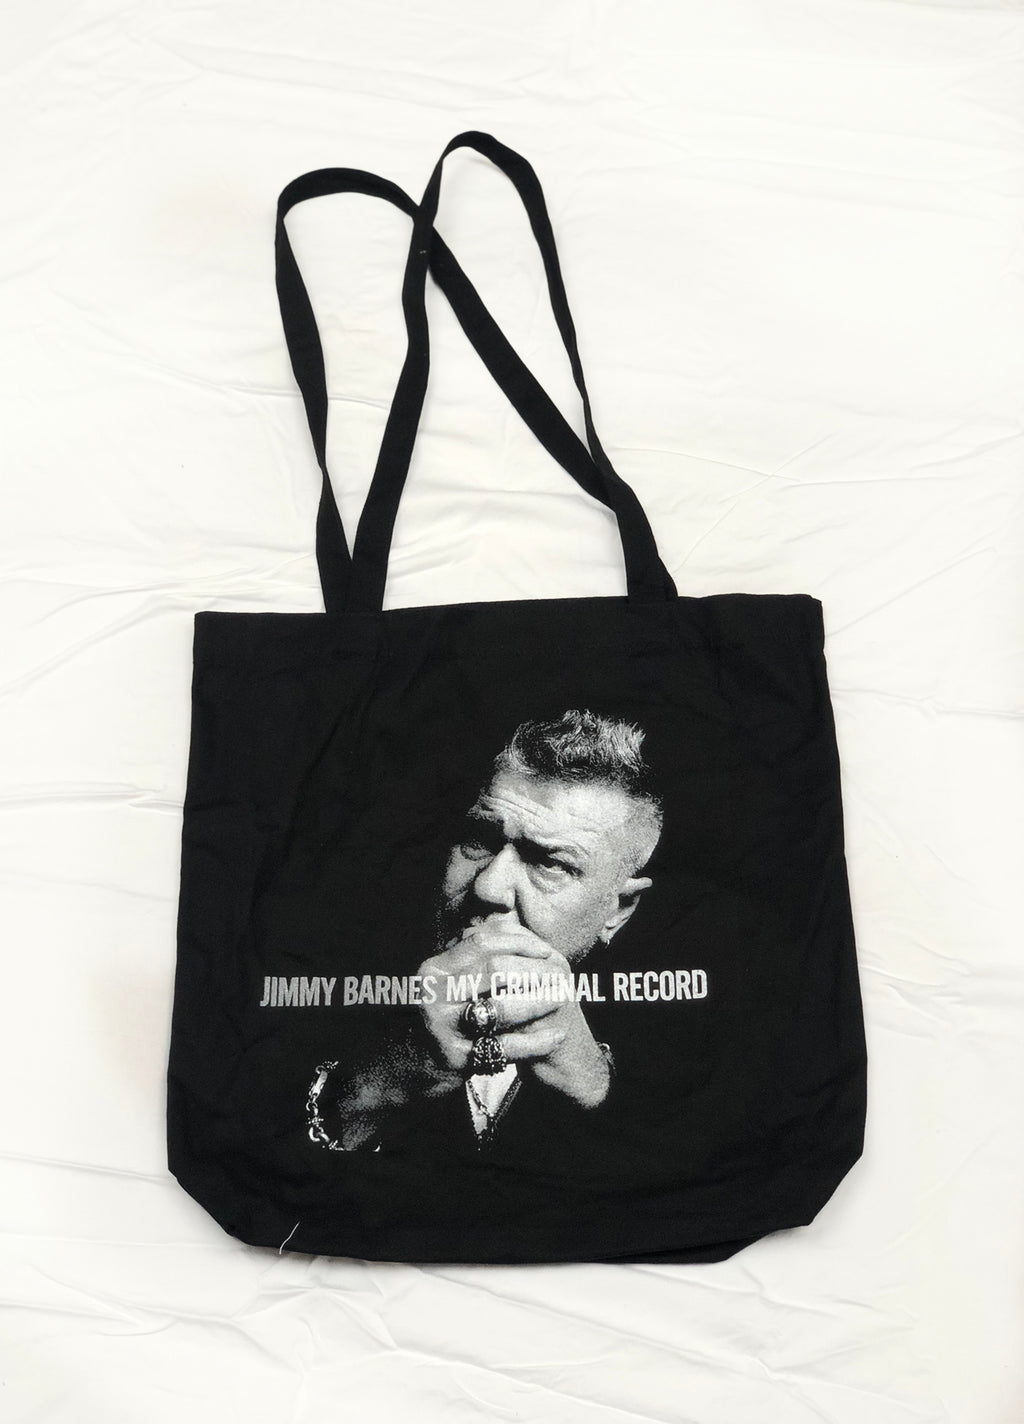 'My Criminal Record' Tote Bag